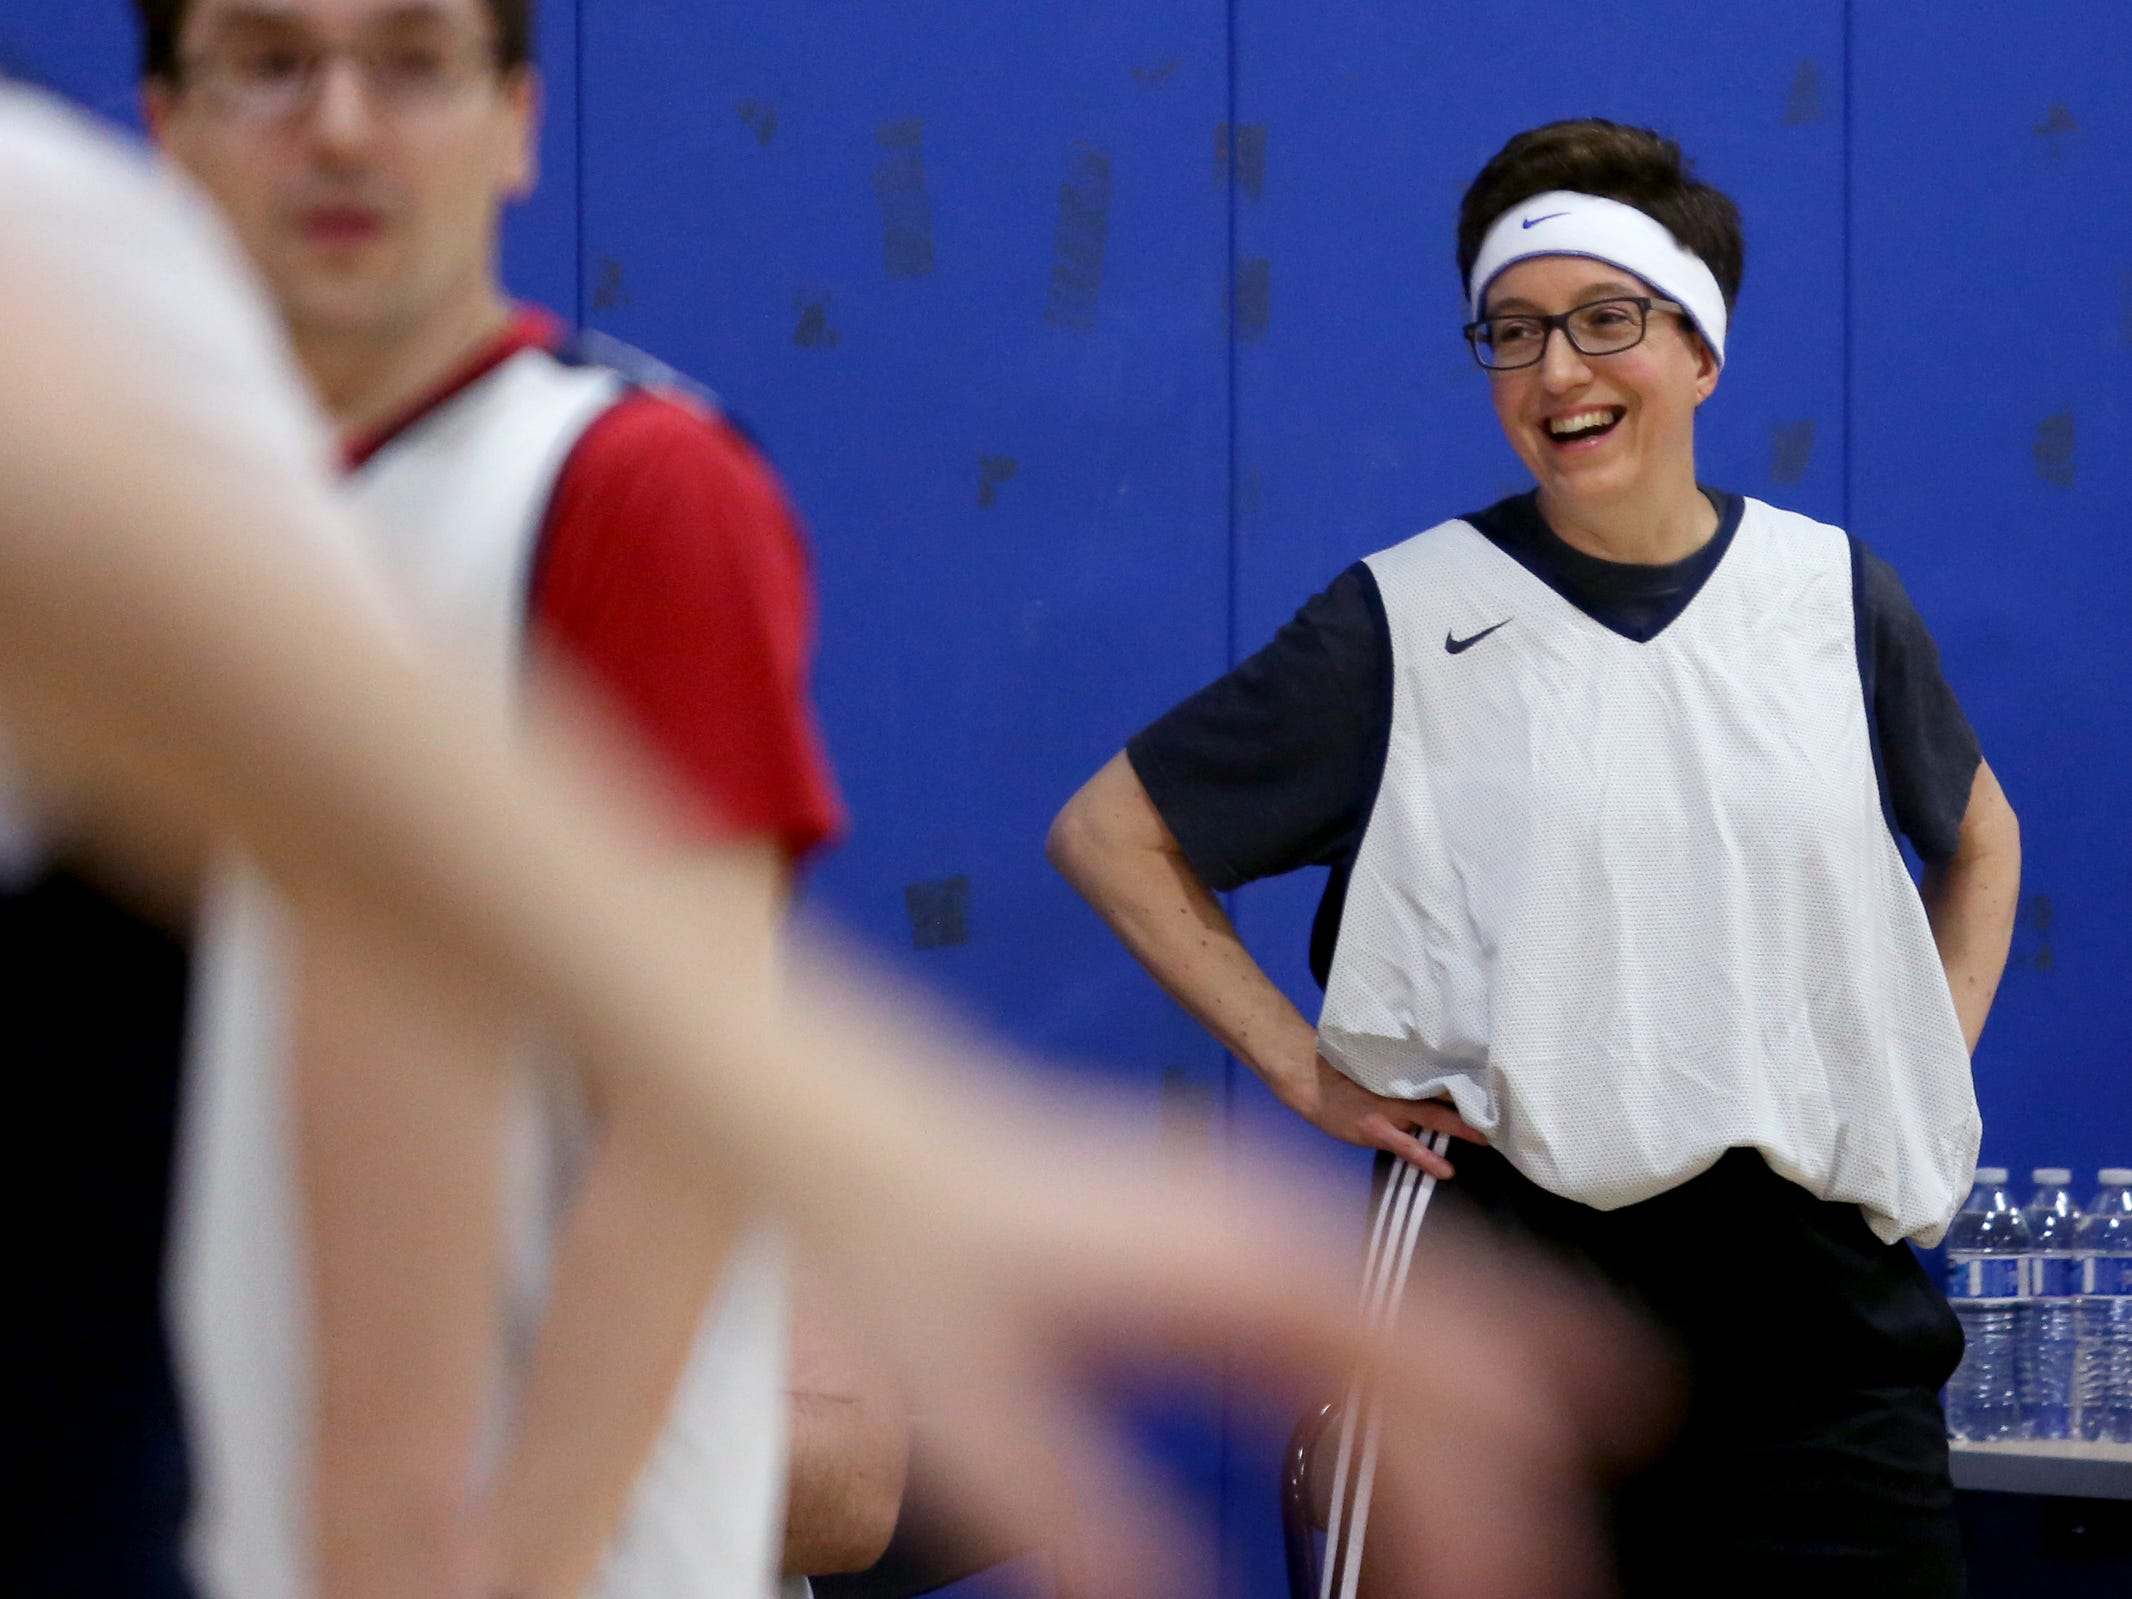 Speaker Tina Kotek watches the second annual House vs. Senate charity basketball tournament at the Boys & Girls Club in Salem on March 13, 2019. The tournament raised more than $10,000 for the Oregon Alliance of Boys & Girls Clubs.